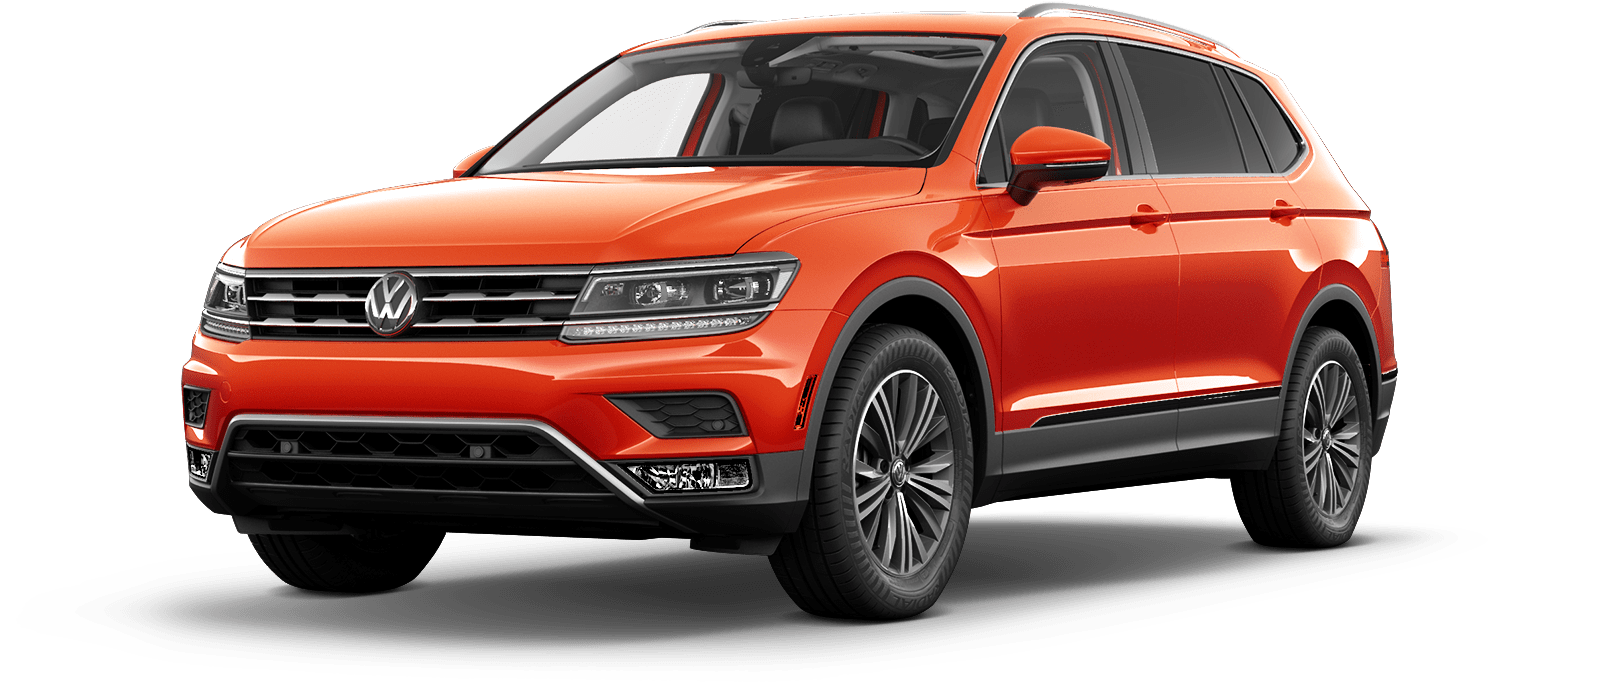 Vw Tiguan Red Paint Code